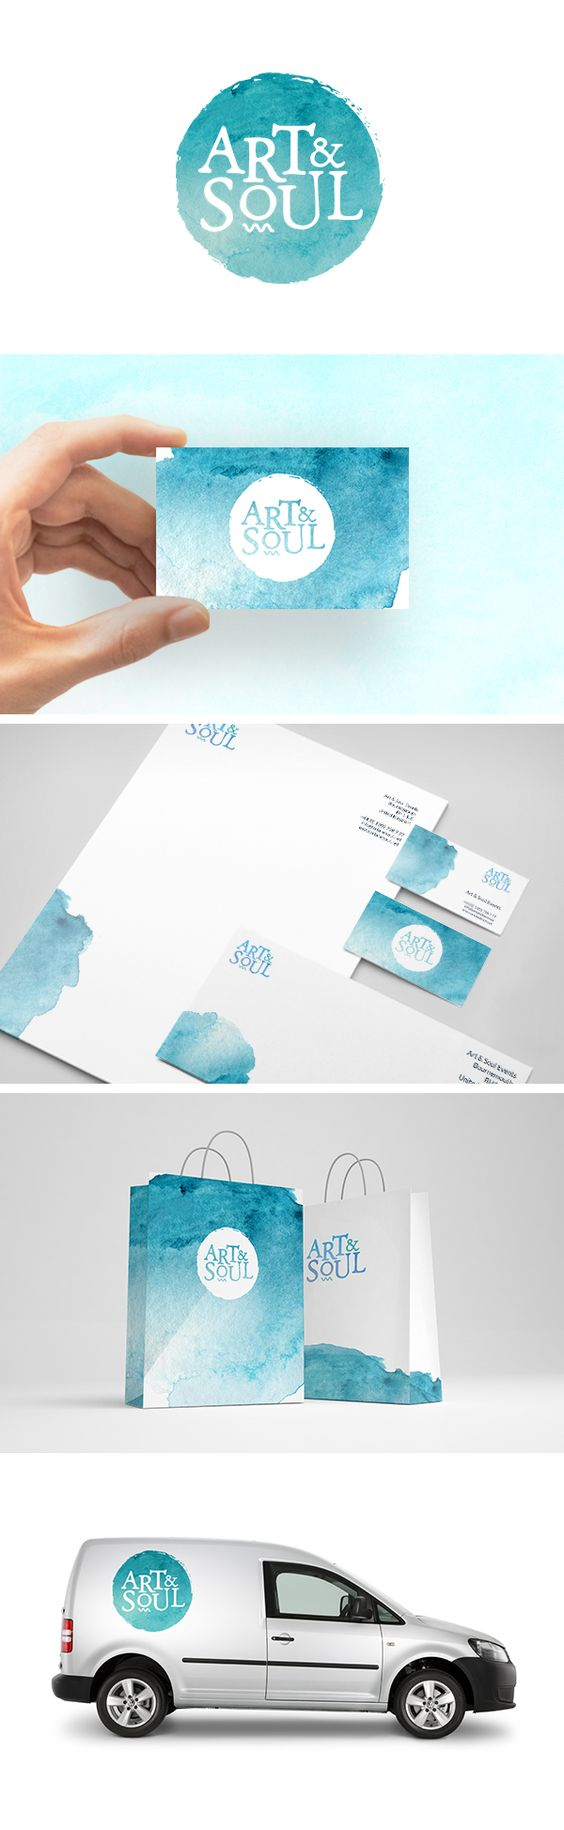 Inspired by the company's coastal routes, Art & Soul needed a fun and creative brand that helped promote their dynamic art courses. #logo #branding #design